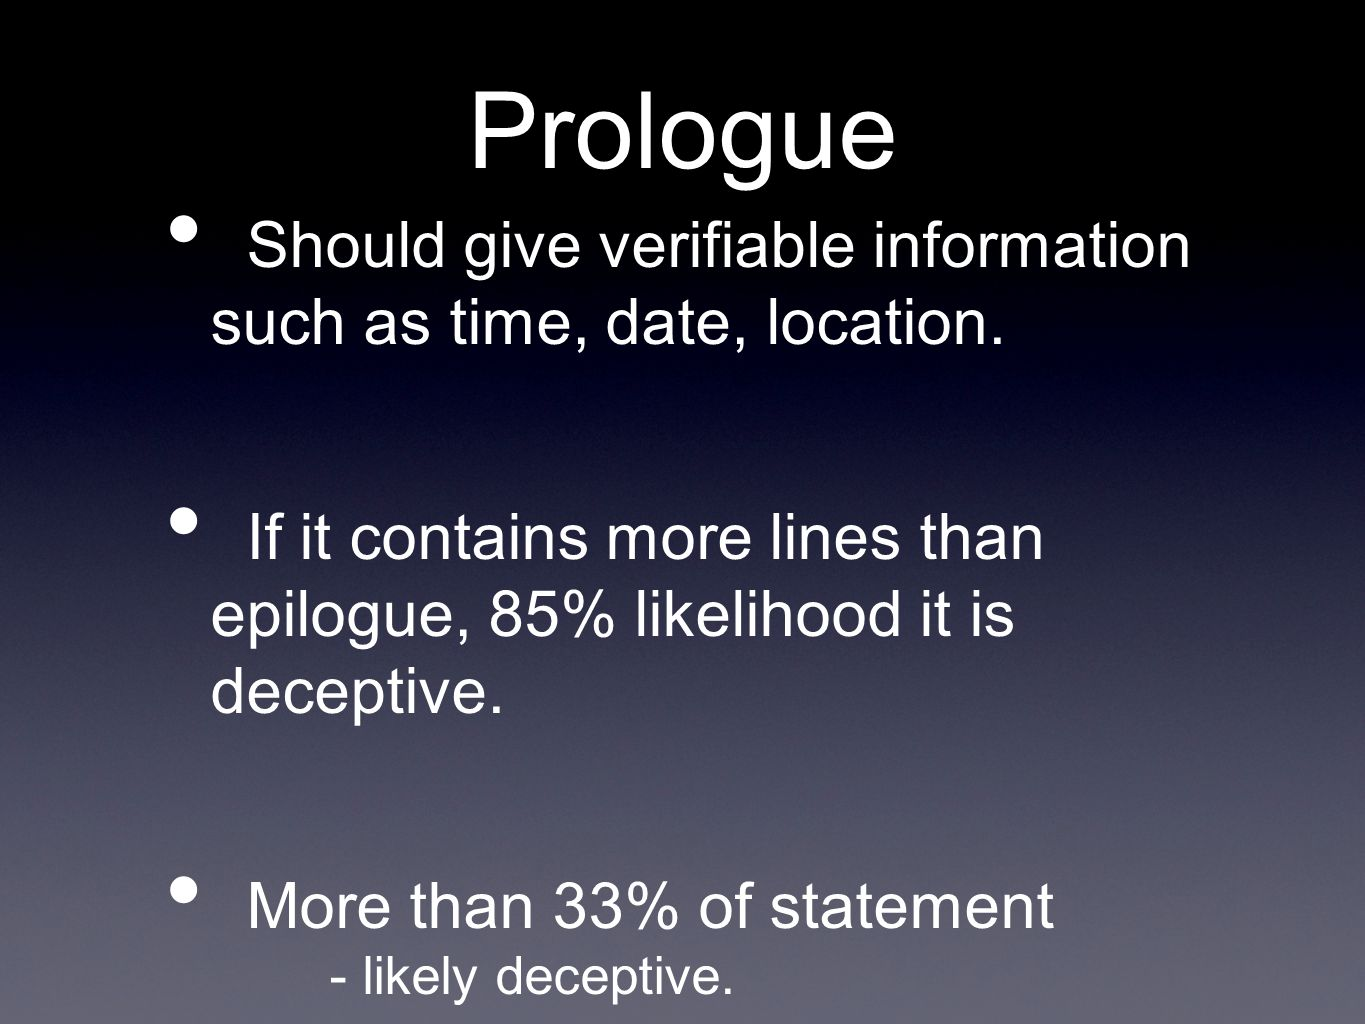 Prologue Should give verifiable information such as time, date, location.